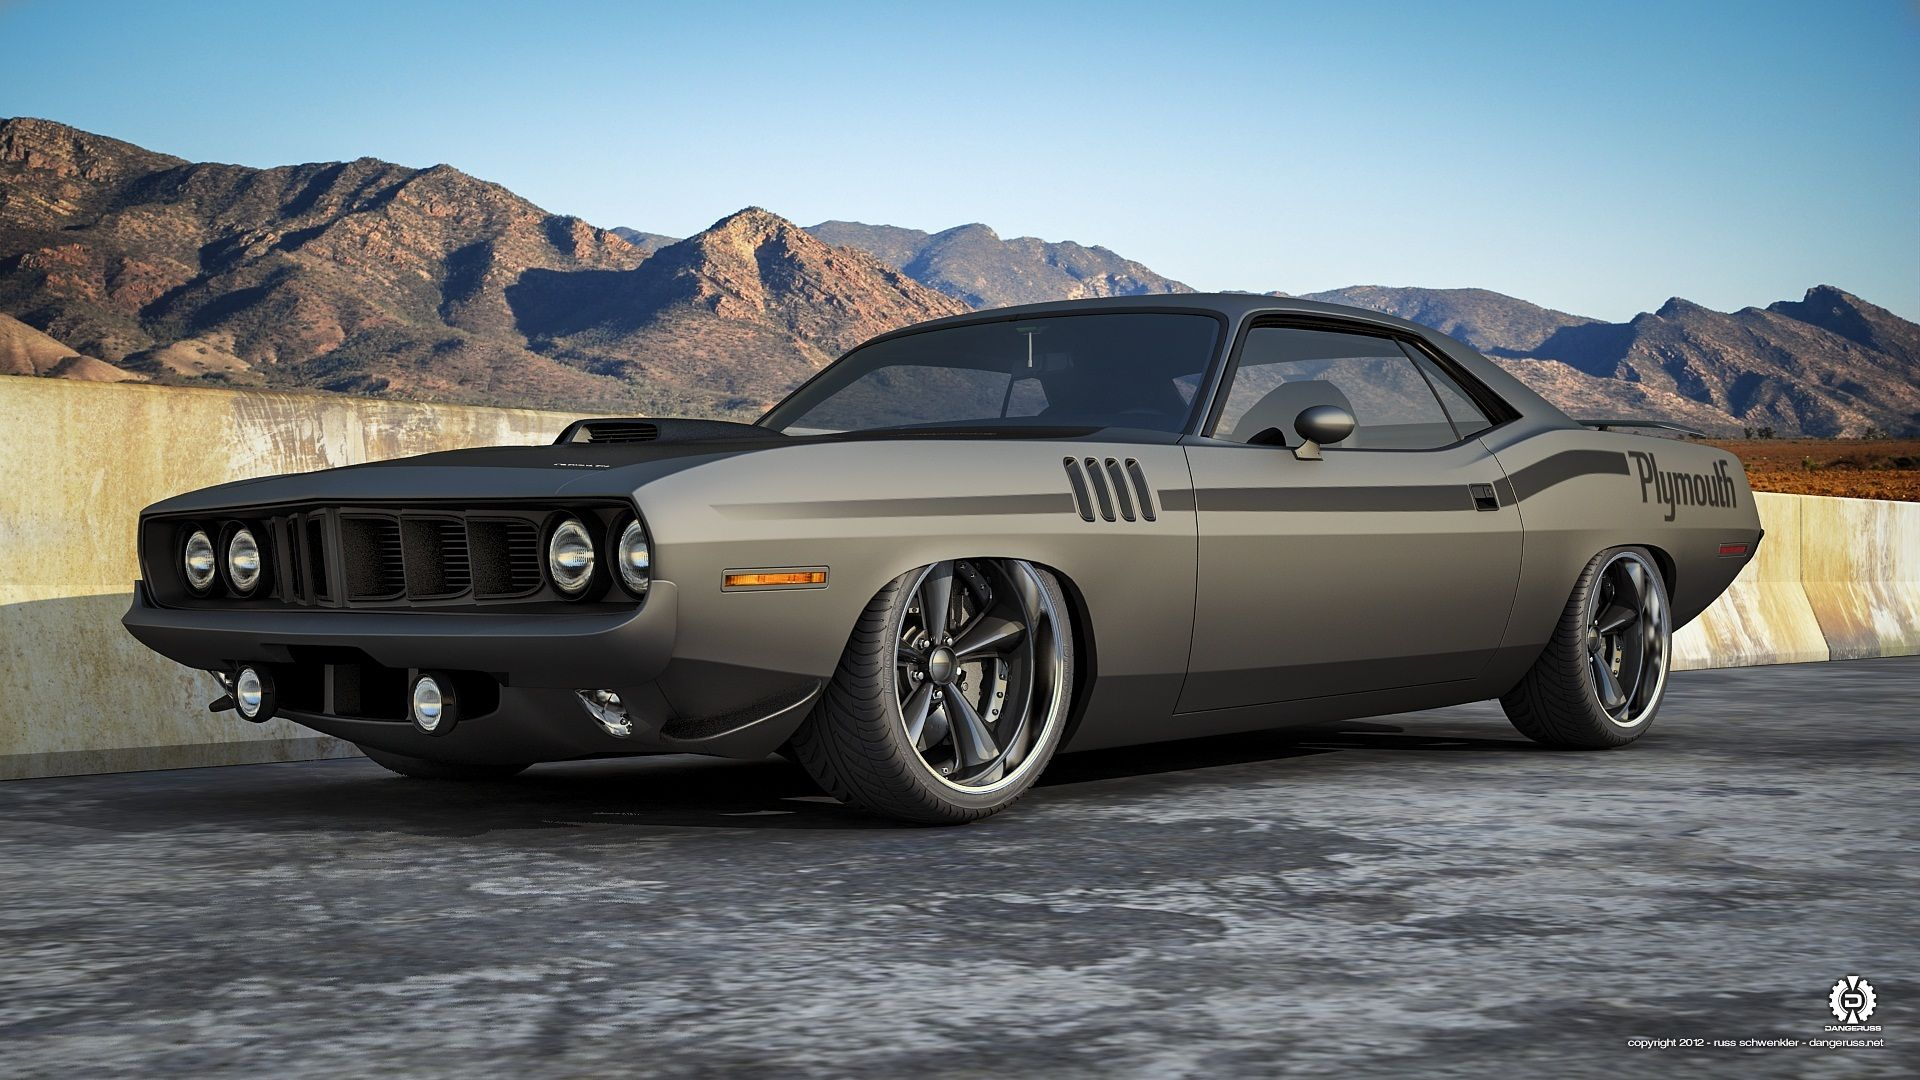 Muscle Car wallpaper | Cuda | Pinterest | Muscles, Cars and Car ...